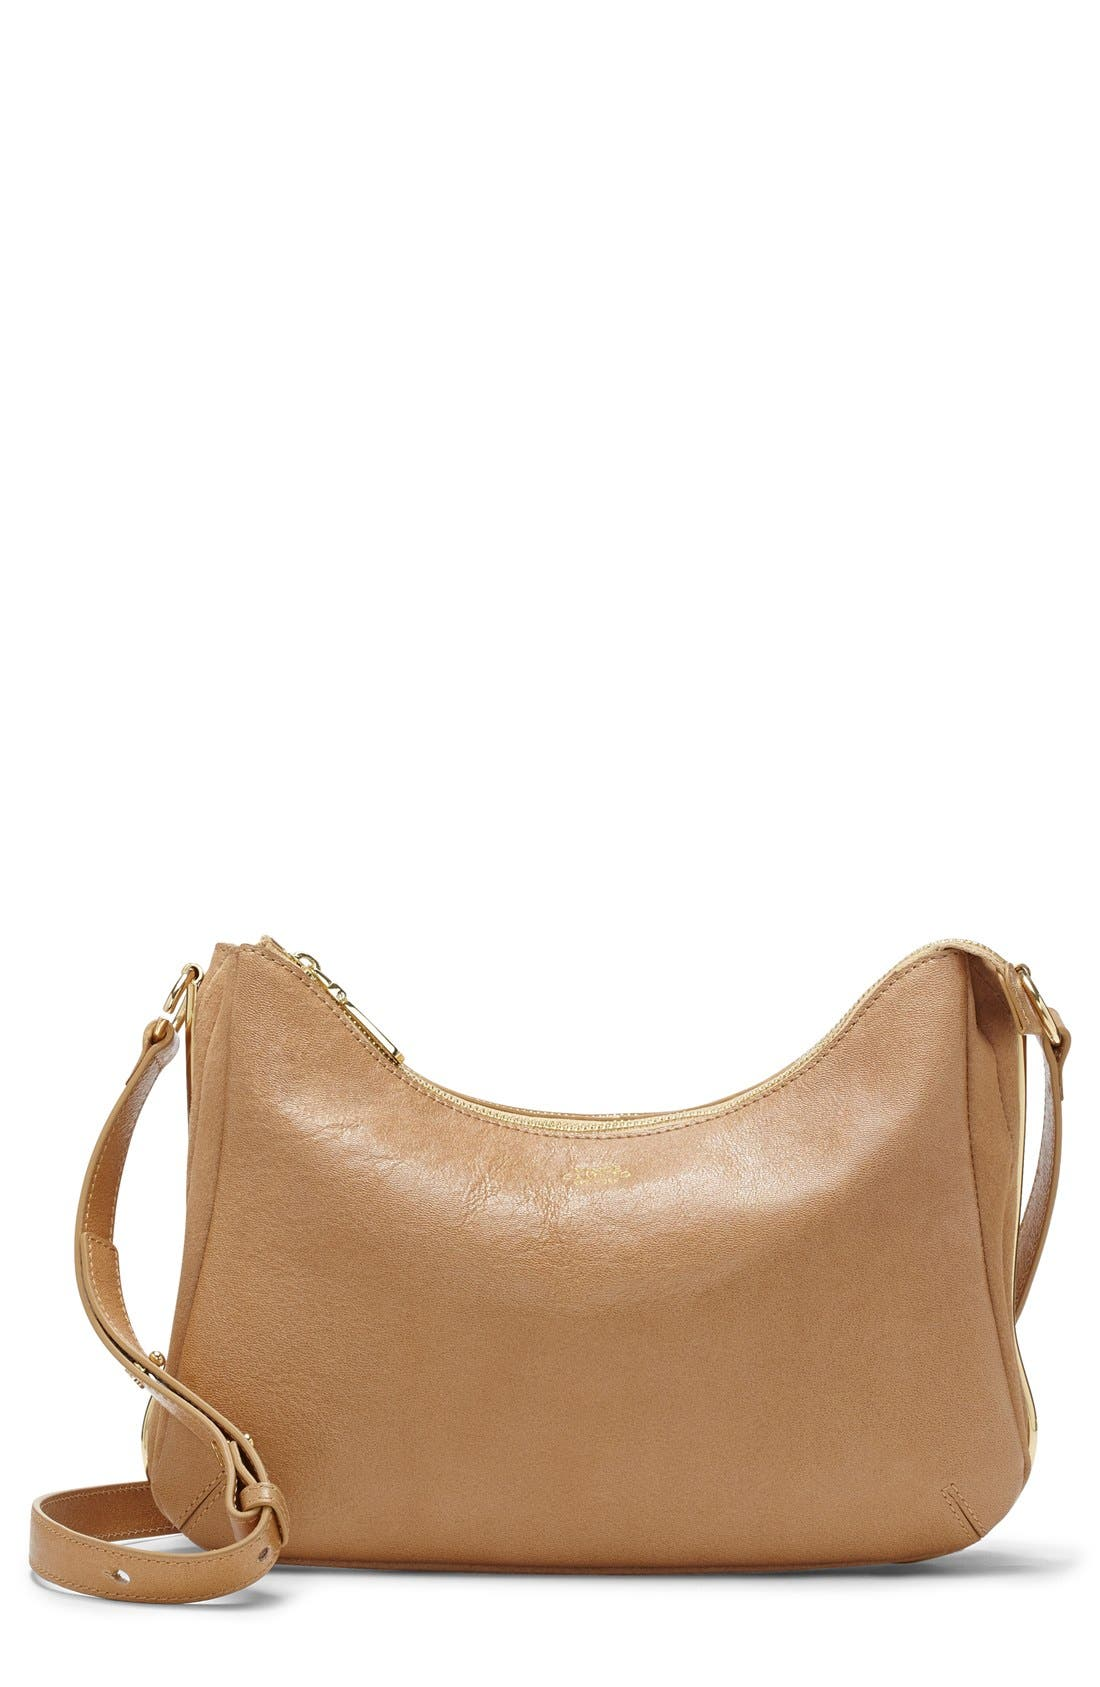 Main Image - Vince Camuto 'Sadie' Leather Crossbody Bag